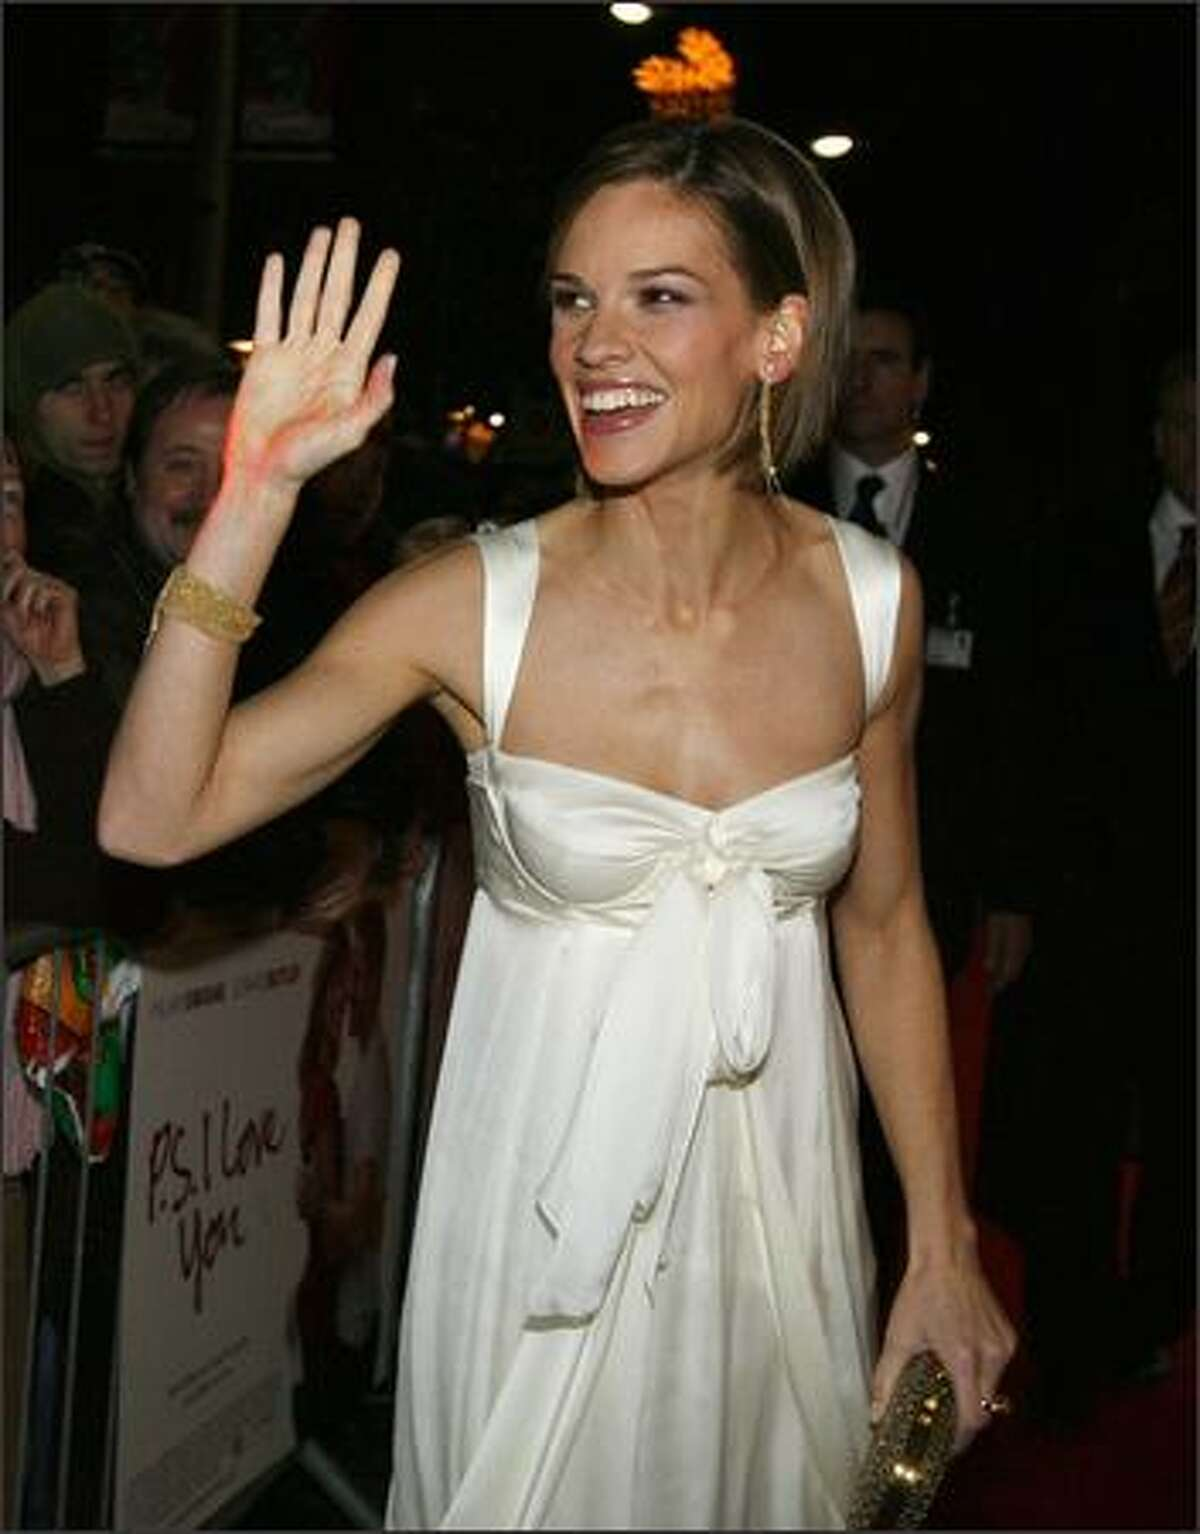 American Hollywood Actress Hilary Swank arrives Wednesday at the Savoy Cinema in Dublin for the European premiere of Cecelia Ahern's